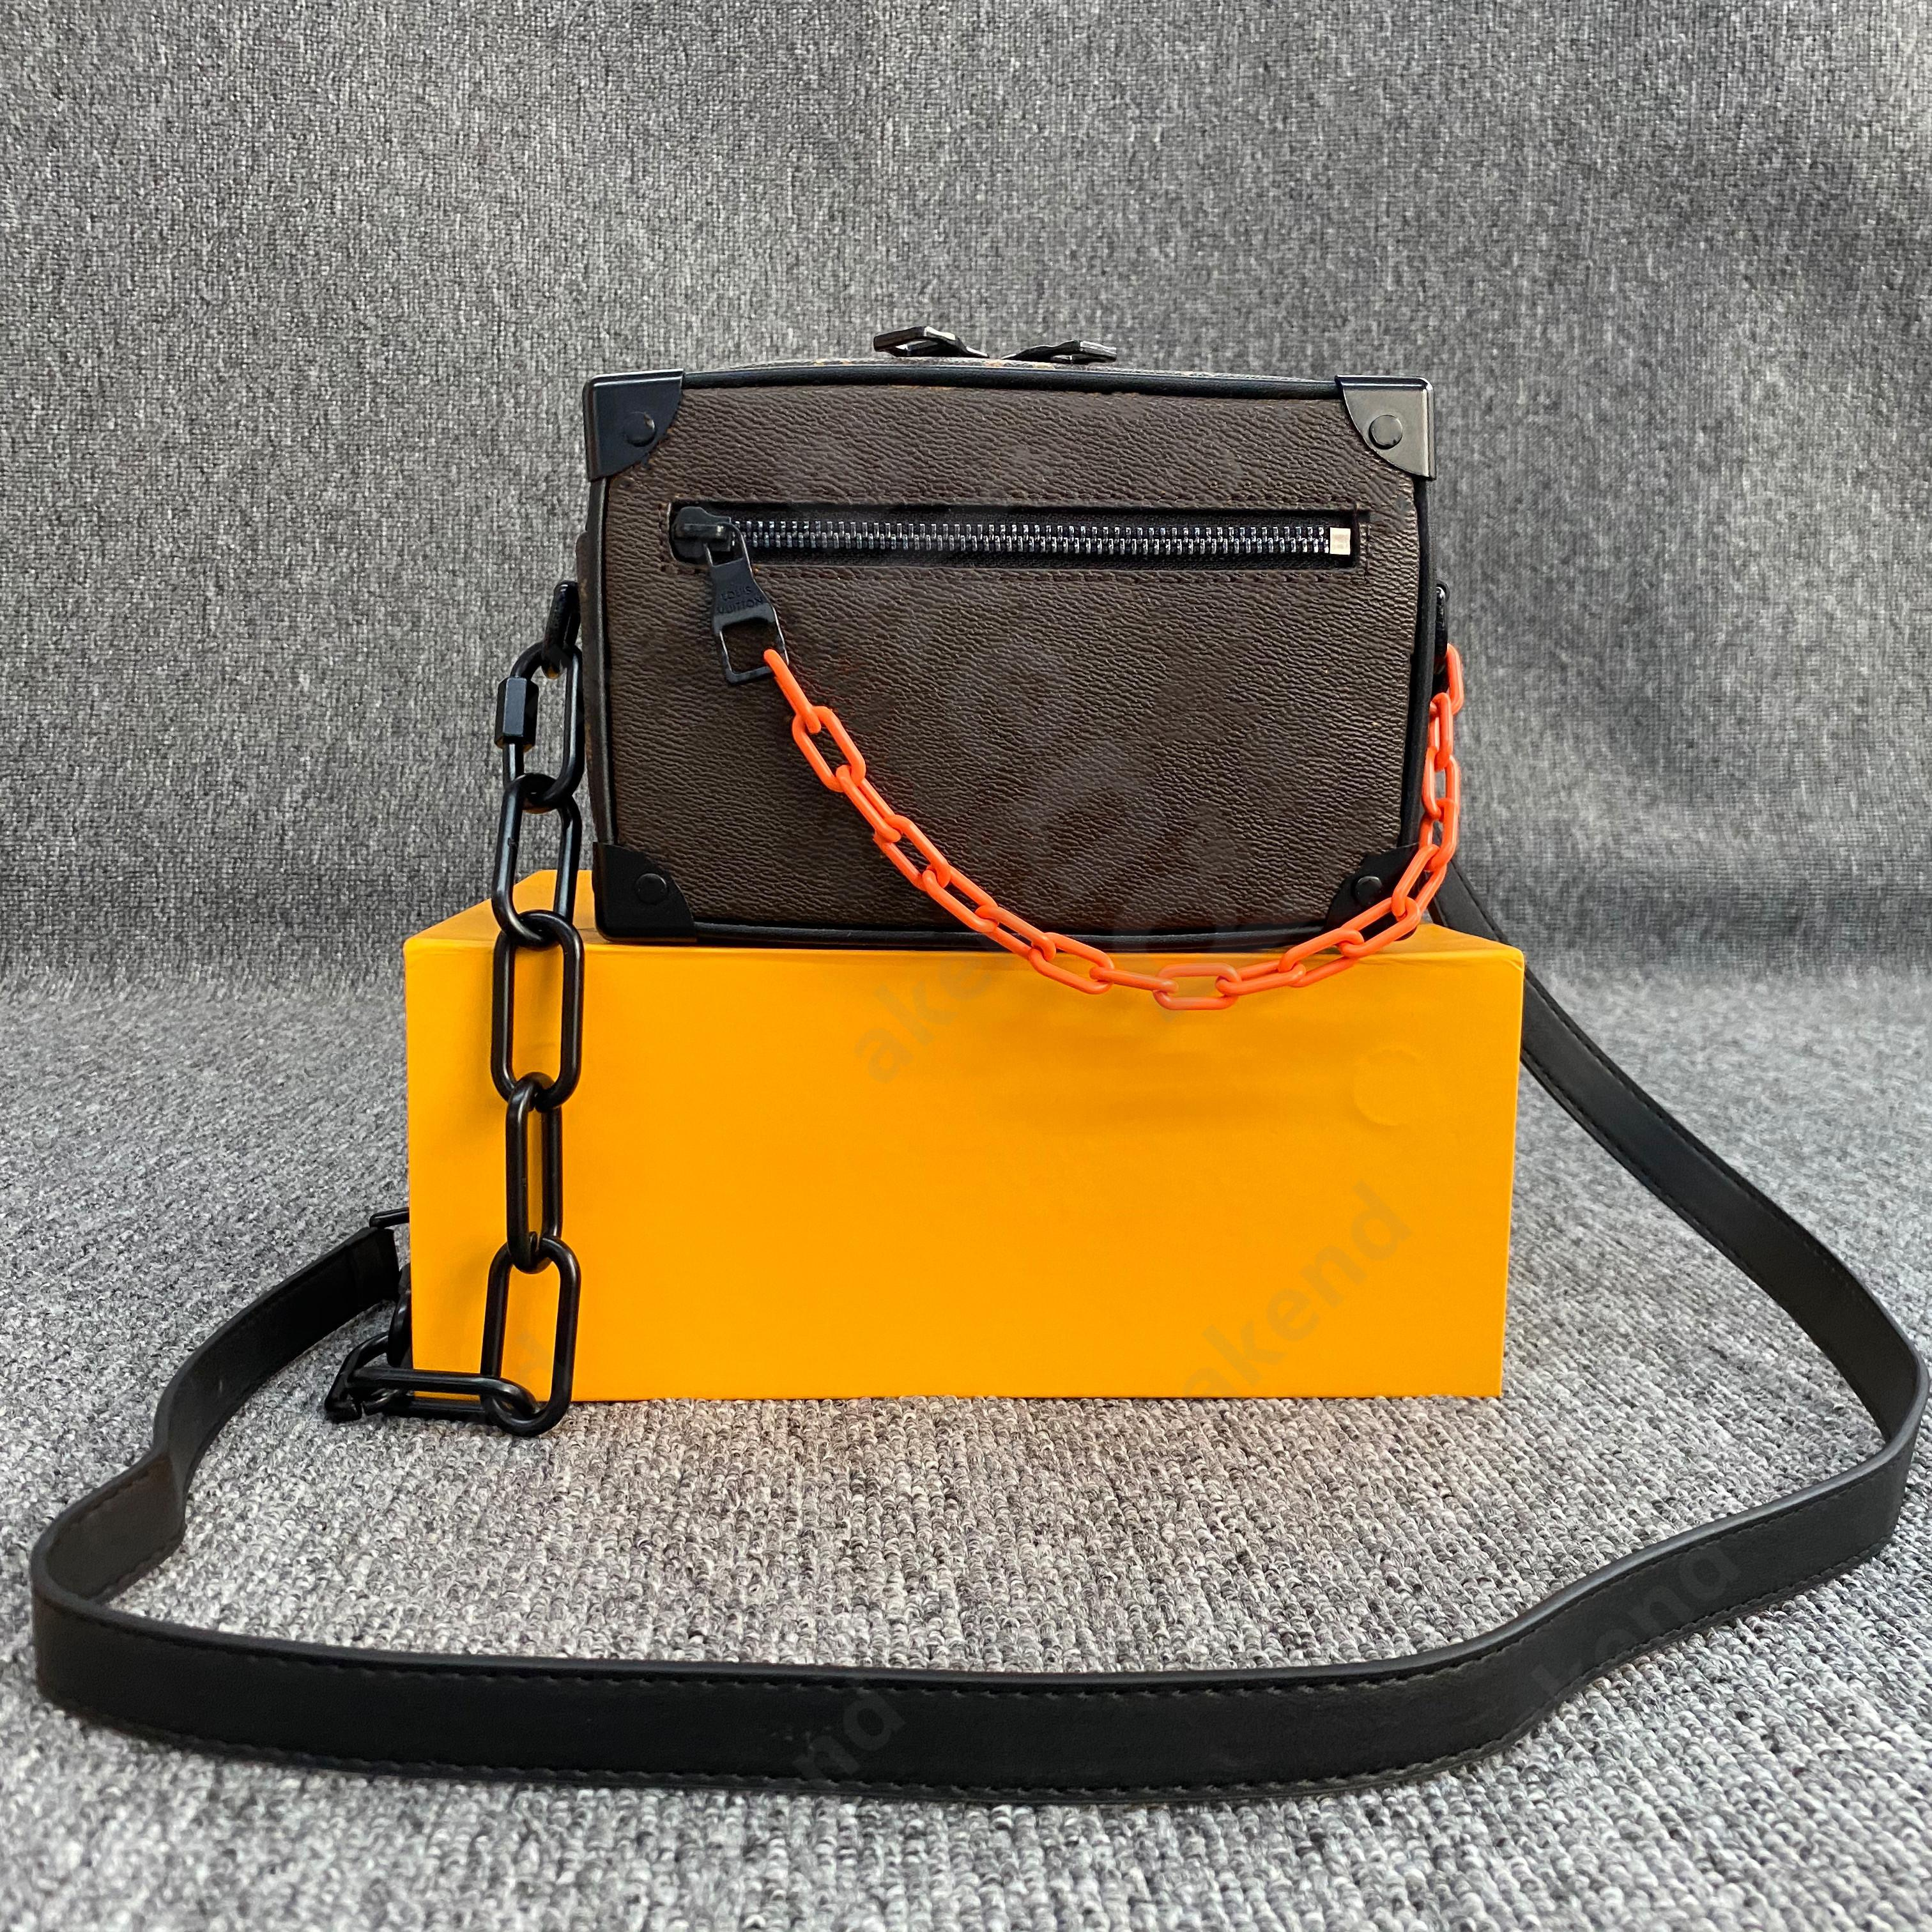 Top quality selling handbag bags SOFT TRUNK Chest pack lady Tote chains handbags presbyopic original purse bag Leather crossbody luxury designer Shoulders Wallet